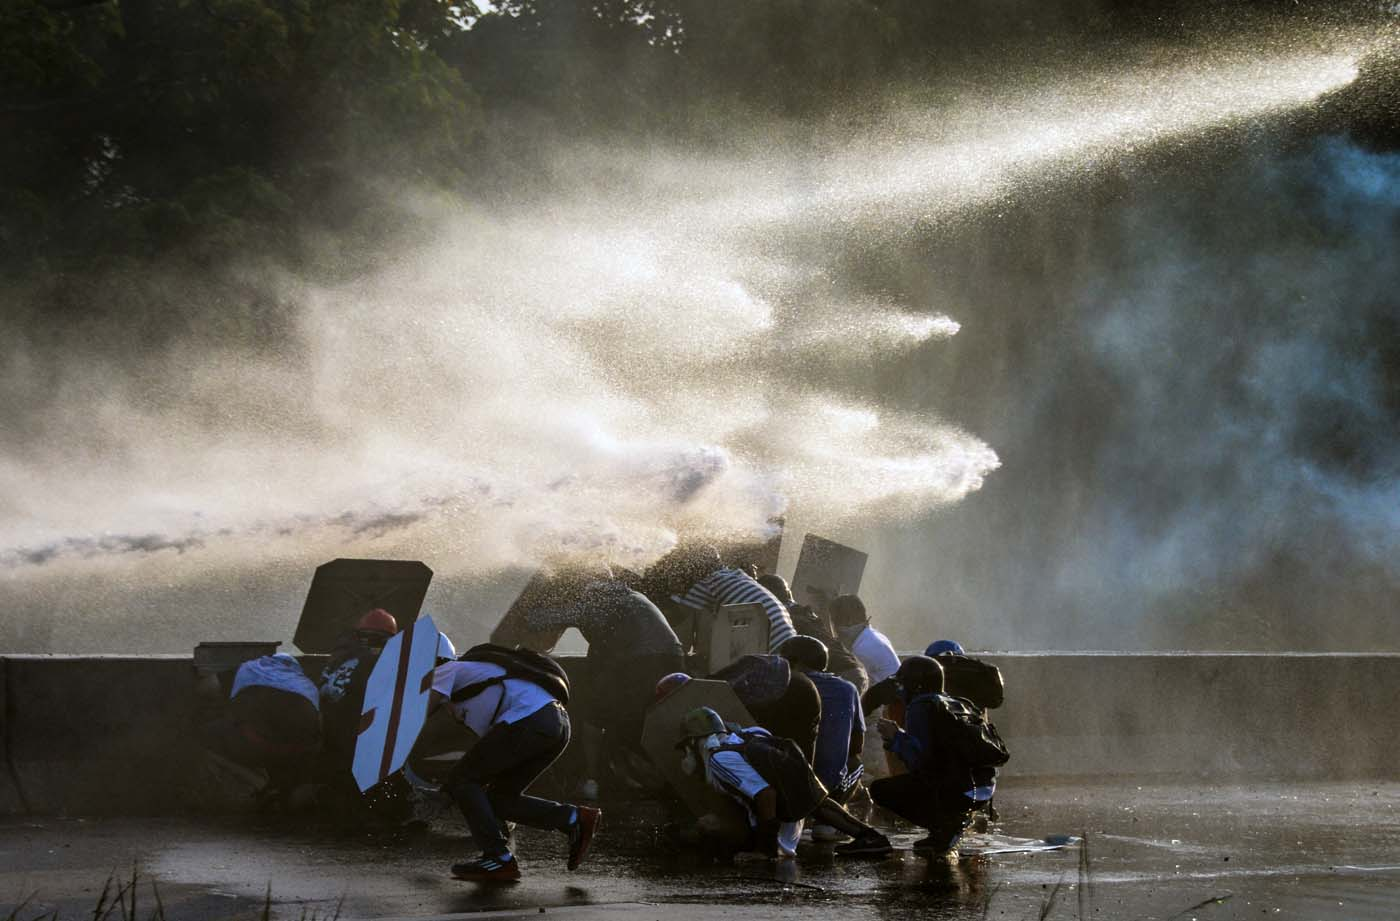 Venezuelan opposition activists clash with the riot police during a rally against the government of President Nicolas Maduro, in Caracas, on May 18, 2017. Venezuelan opposition leader Henrique Capriles said Thursday authorities confiscated his passport and prevented him from travelling to New York to discuss his country's deadly political crisis with United Nations officials. On Monday Venezuelans launched a seventh week of anti-government demonstrations by blocking roads, vowing not to budge all day in protest at a deadly political and economic crisis. / AFP PHOTO / FEDERICO PARRA